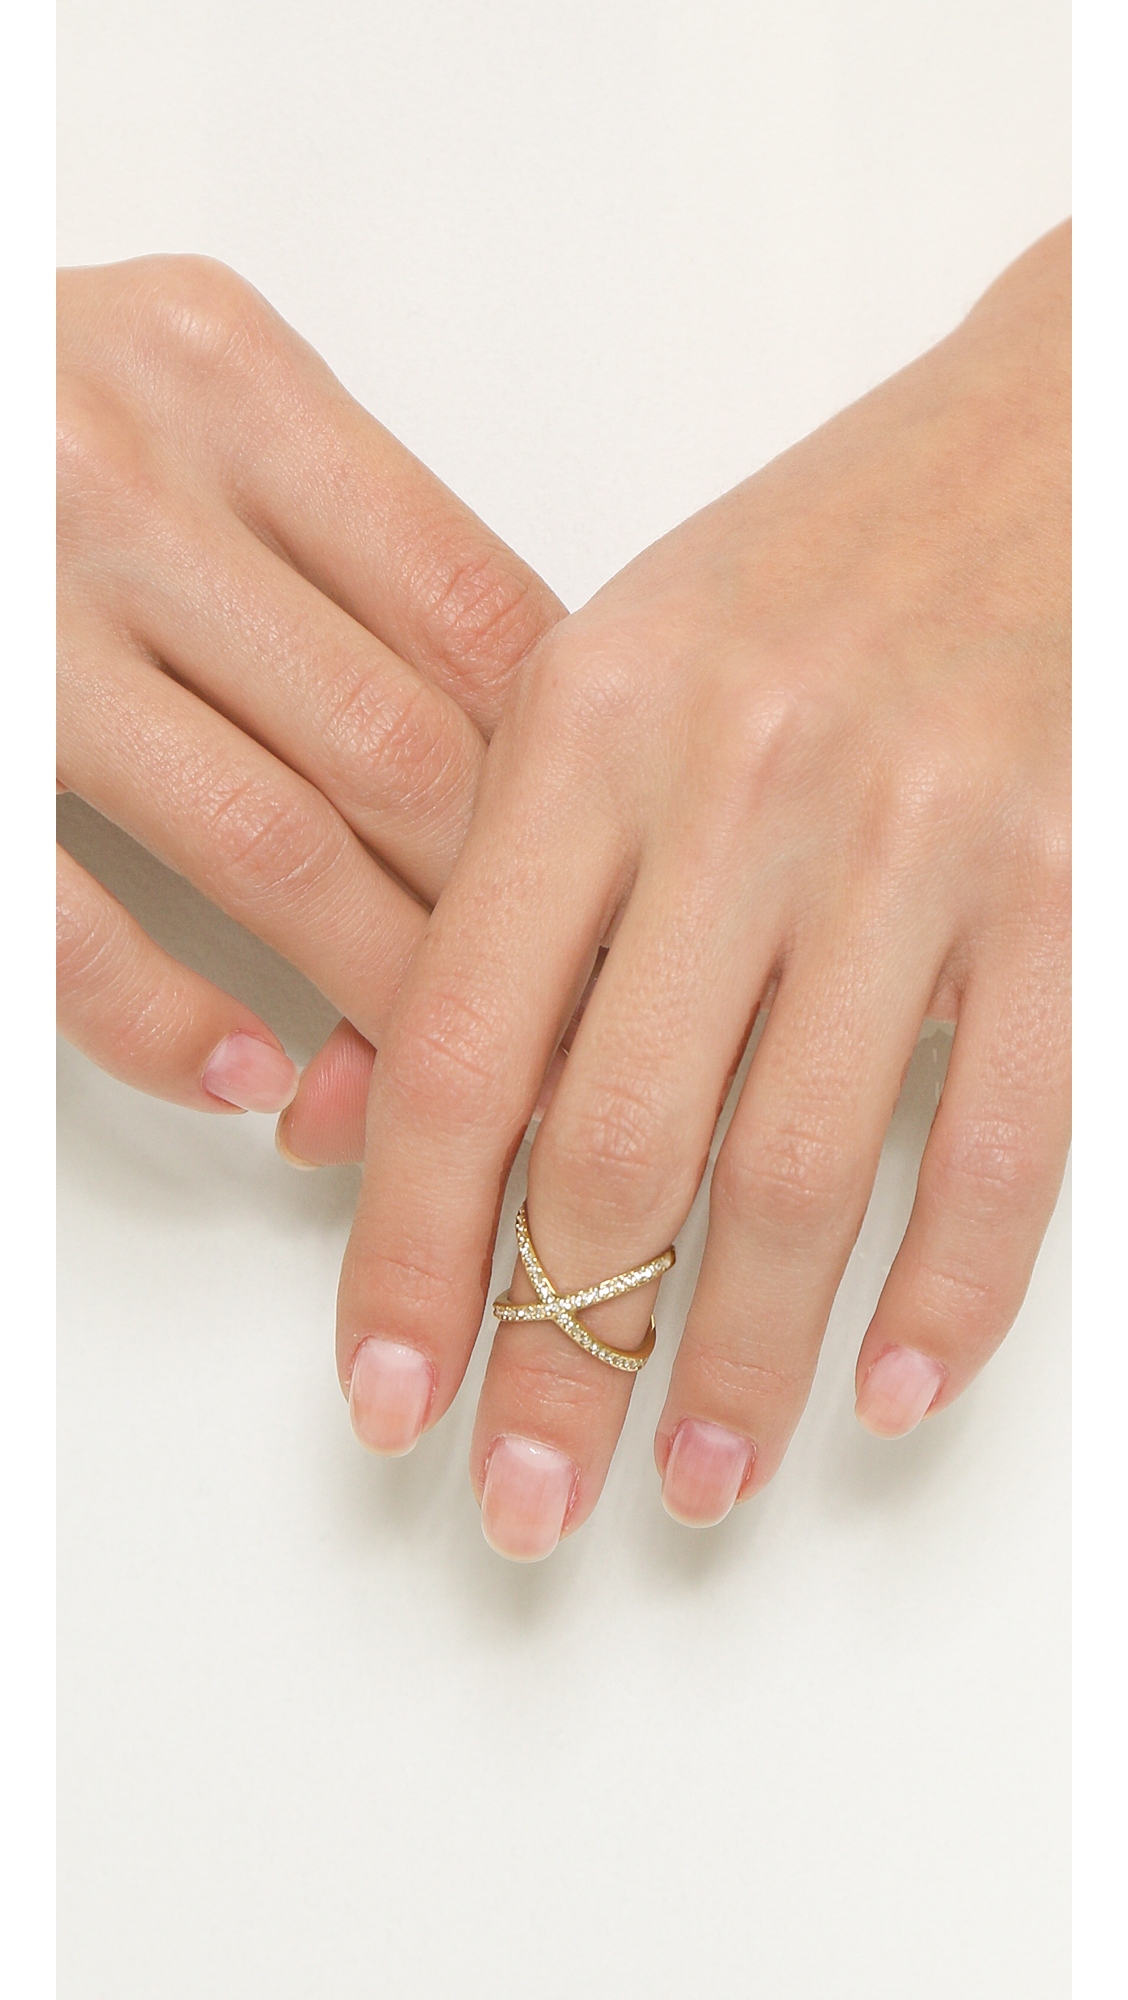 ebe2b0c06a6f ... Michael kors Pave X Midi Ring - GoldClear in Metallic Lyst ...